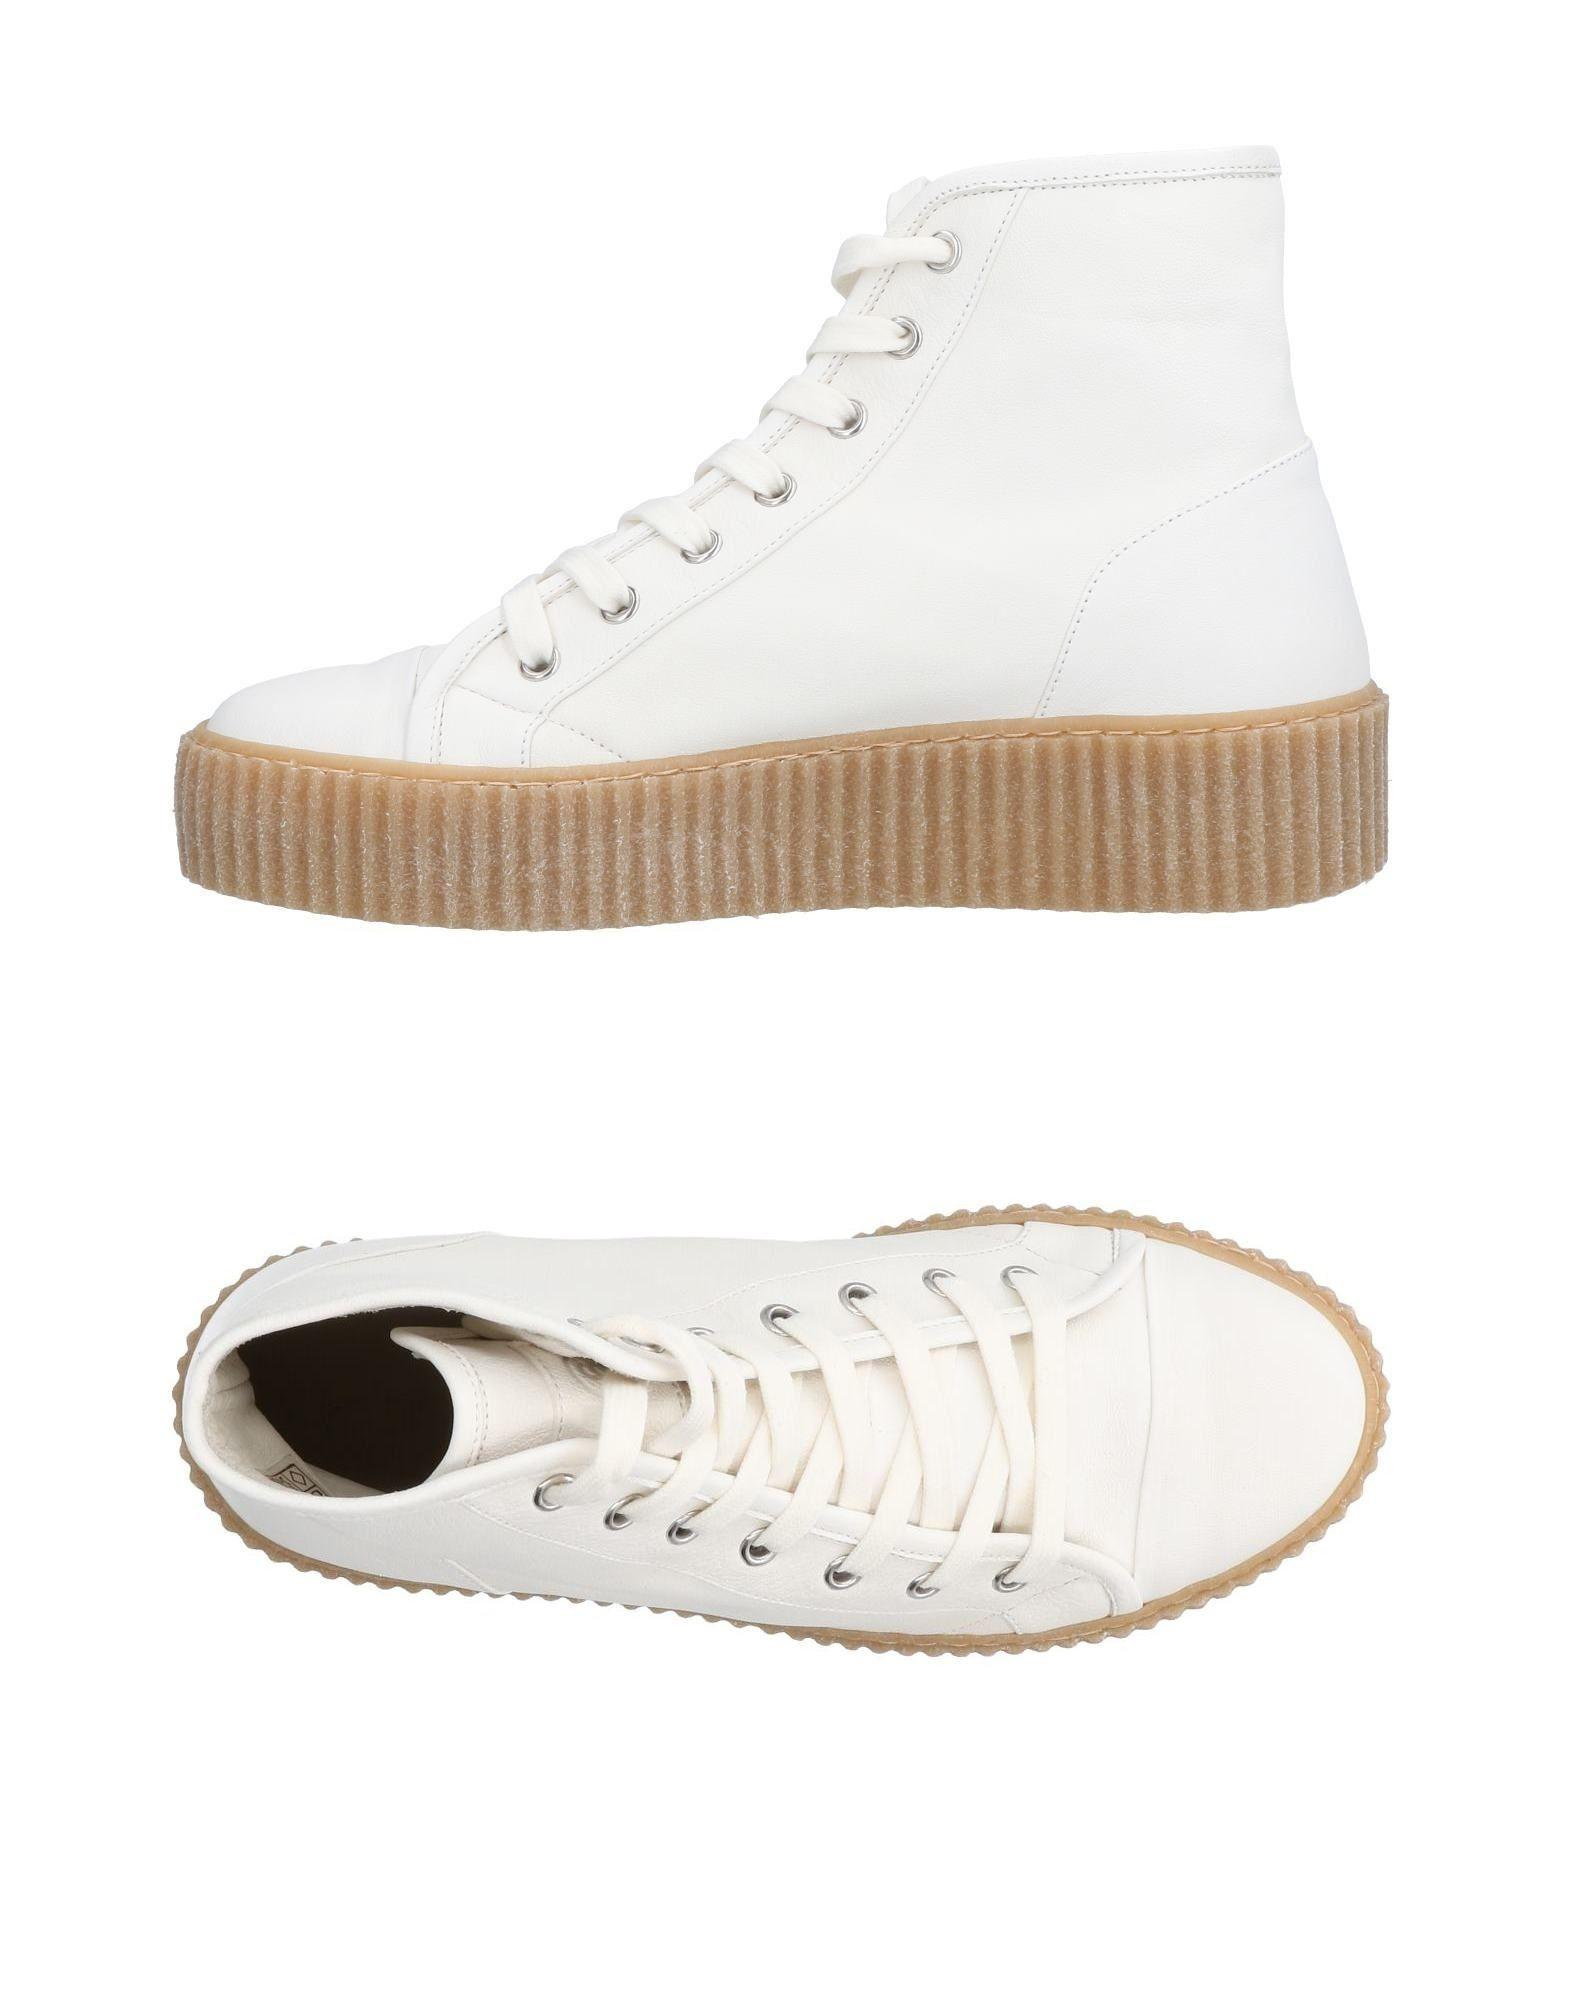 71797995ff060 Mm6 Maison Margiela Sneakers In Ivory | ModeSens